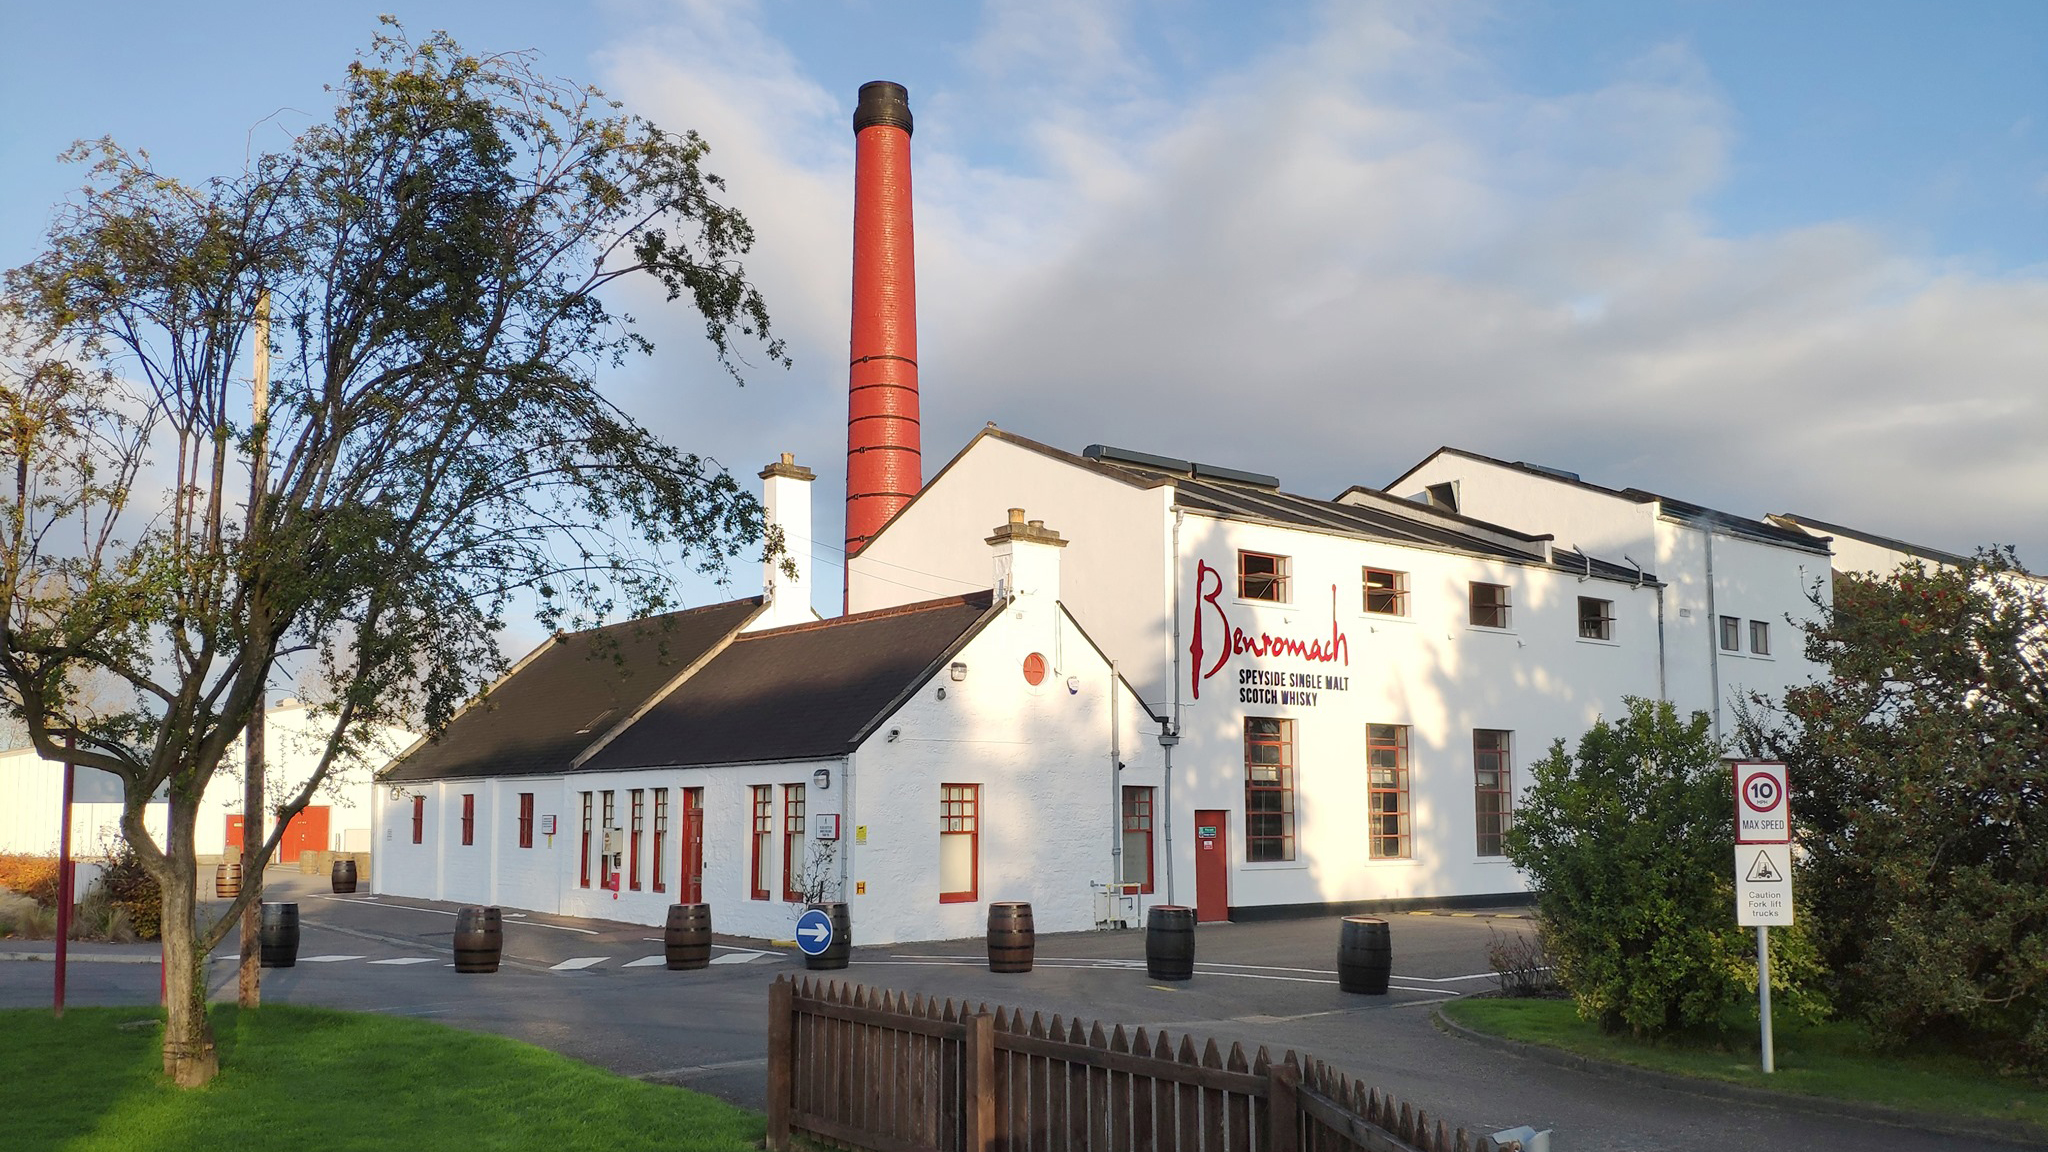 Benromach Virtual Whisky Tour